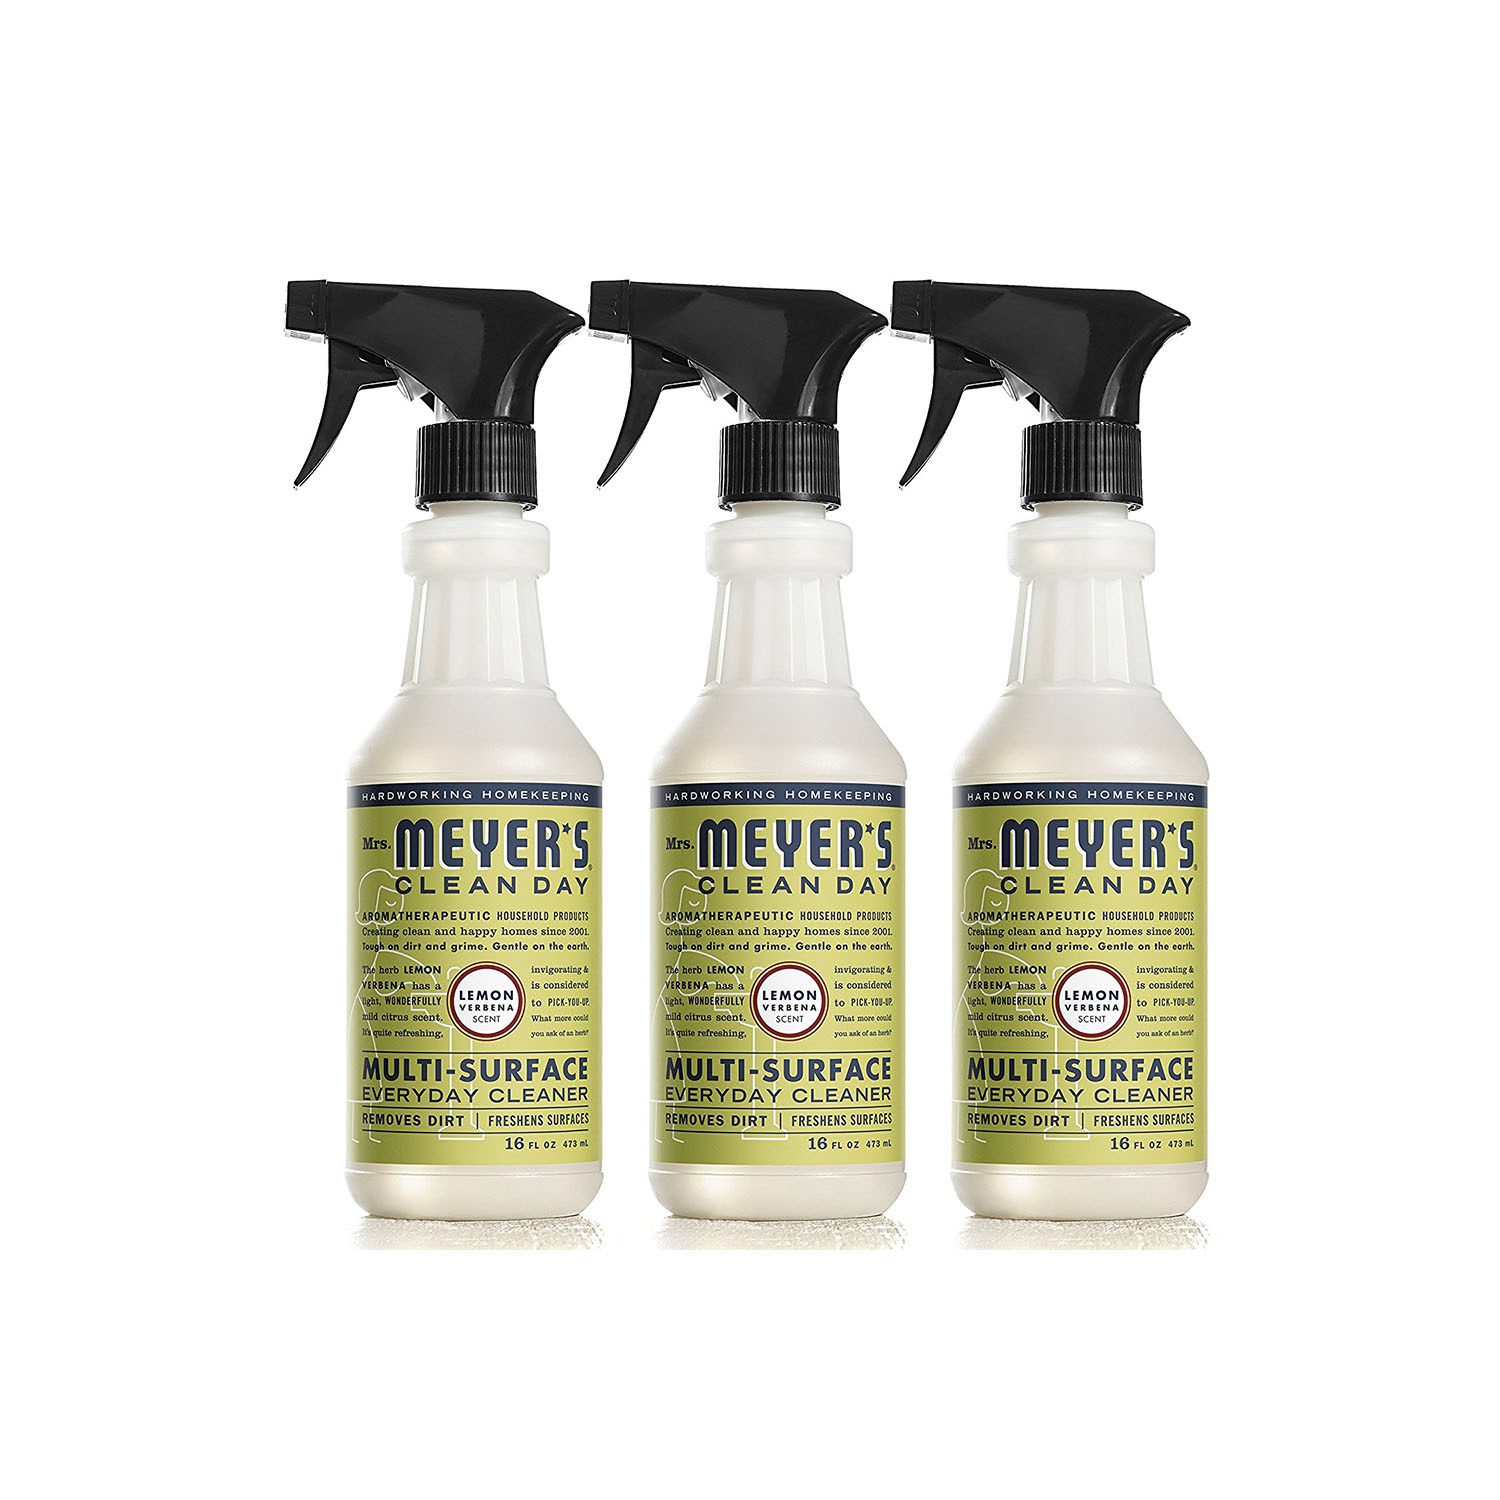 Mrs. Meyer's Multi-Surface Everyday Cleaner Mum